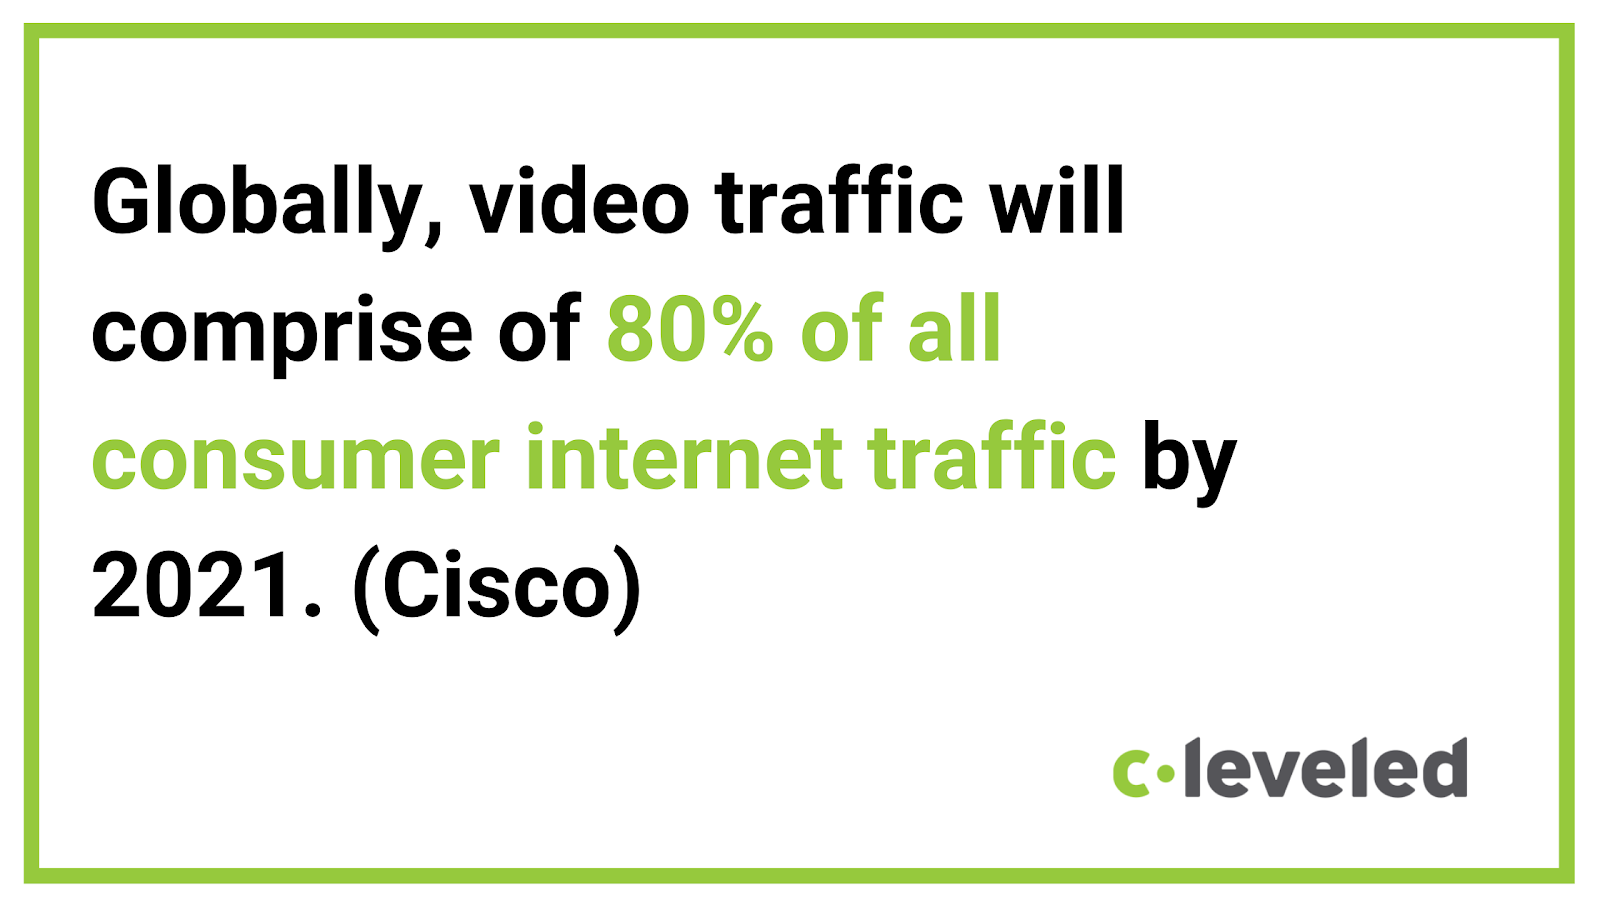 video marketing is the new content marketing trend